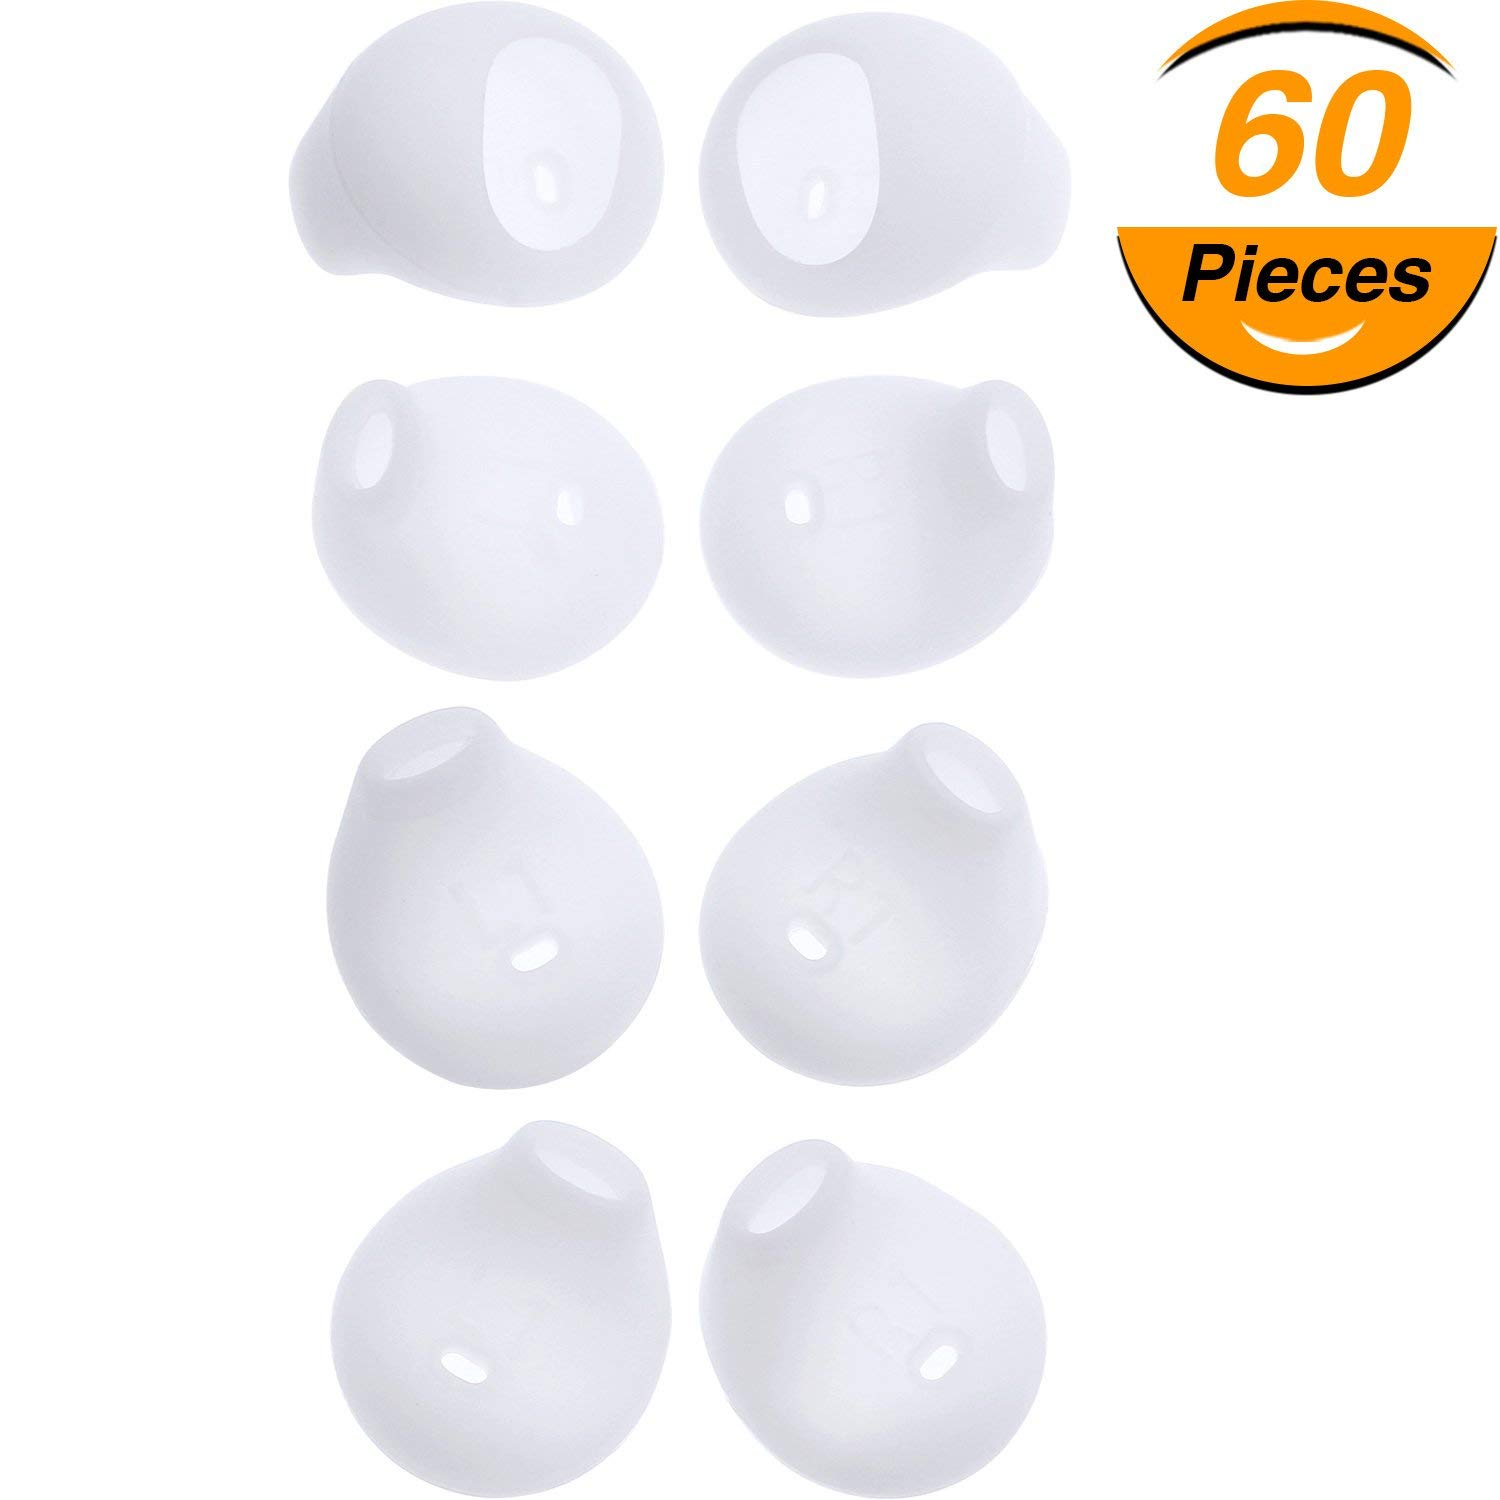 61eda53f772 Get Quotations · Hestya 60 Pieces Silicone Earbud Covers Earbud Cover Tips  Replacement for Samsung Galaxy Note 5/